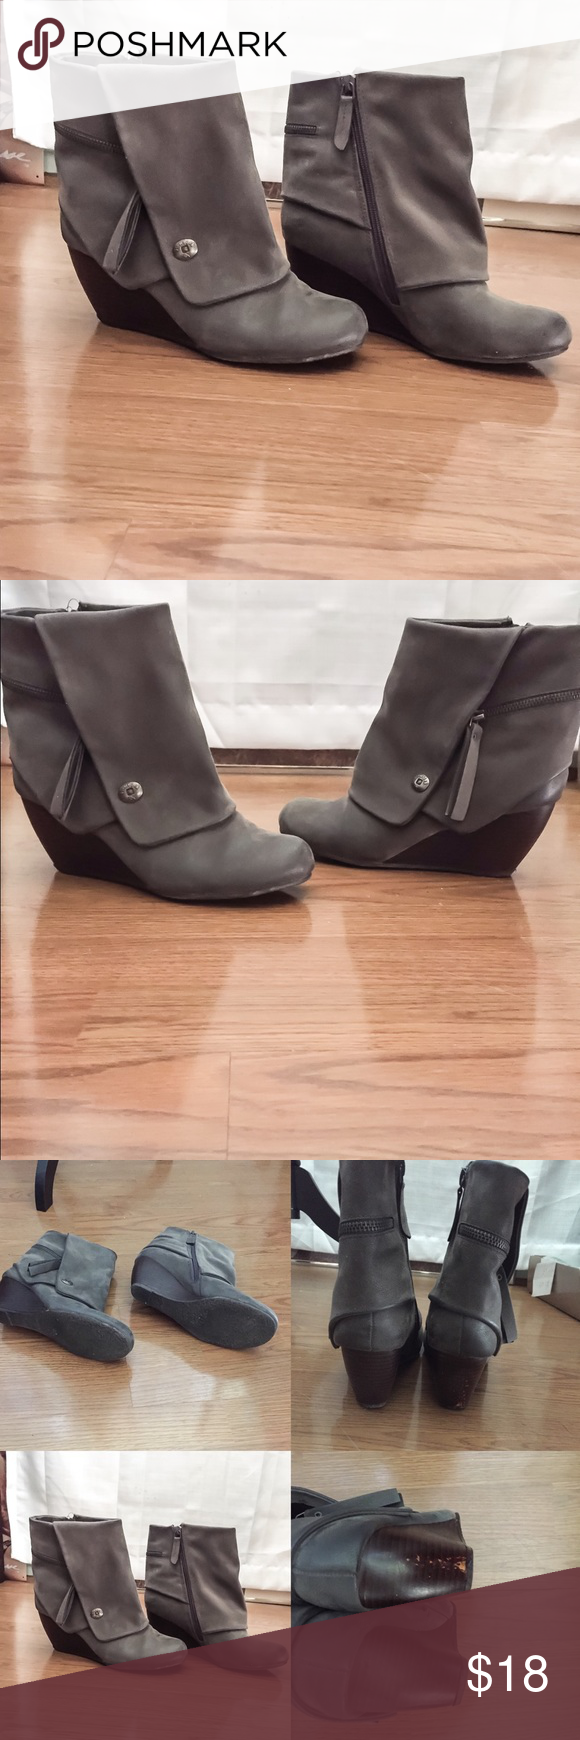 Blowfish Gray Wedge ankle Booties These are Blowfish wedge ankle wedges in a gray/slate color, Style Basha. They are size 8.  Please note the photo of the back heel. That is the only known cosmetic issue, as overall they are in good condition. I tried to show the condition of the shoes in the pictures and priced them accordingly. Serious offers only. Blowfish Shoes Ankle Boots & Booties